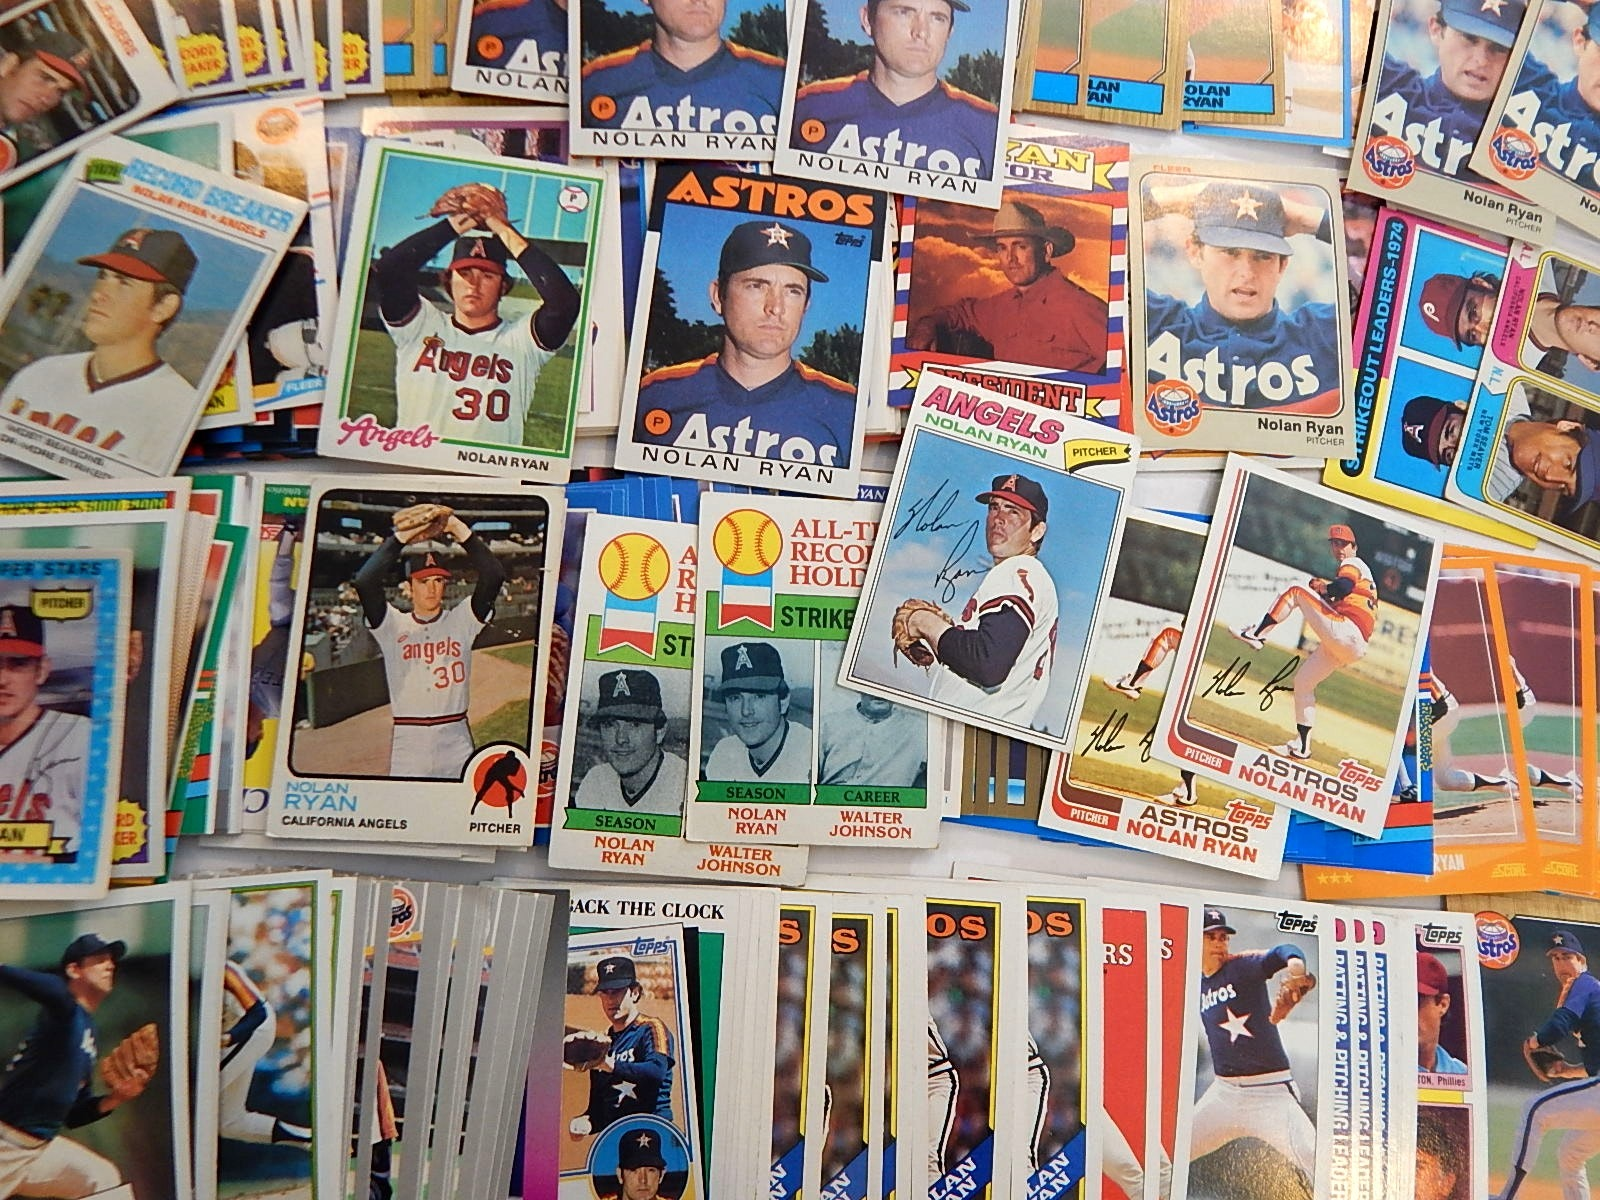 Over 200 (HOF) Nolan Ryan Baseball Cards from 1970s to 1980s